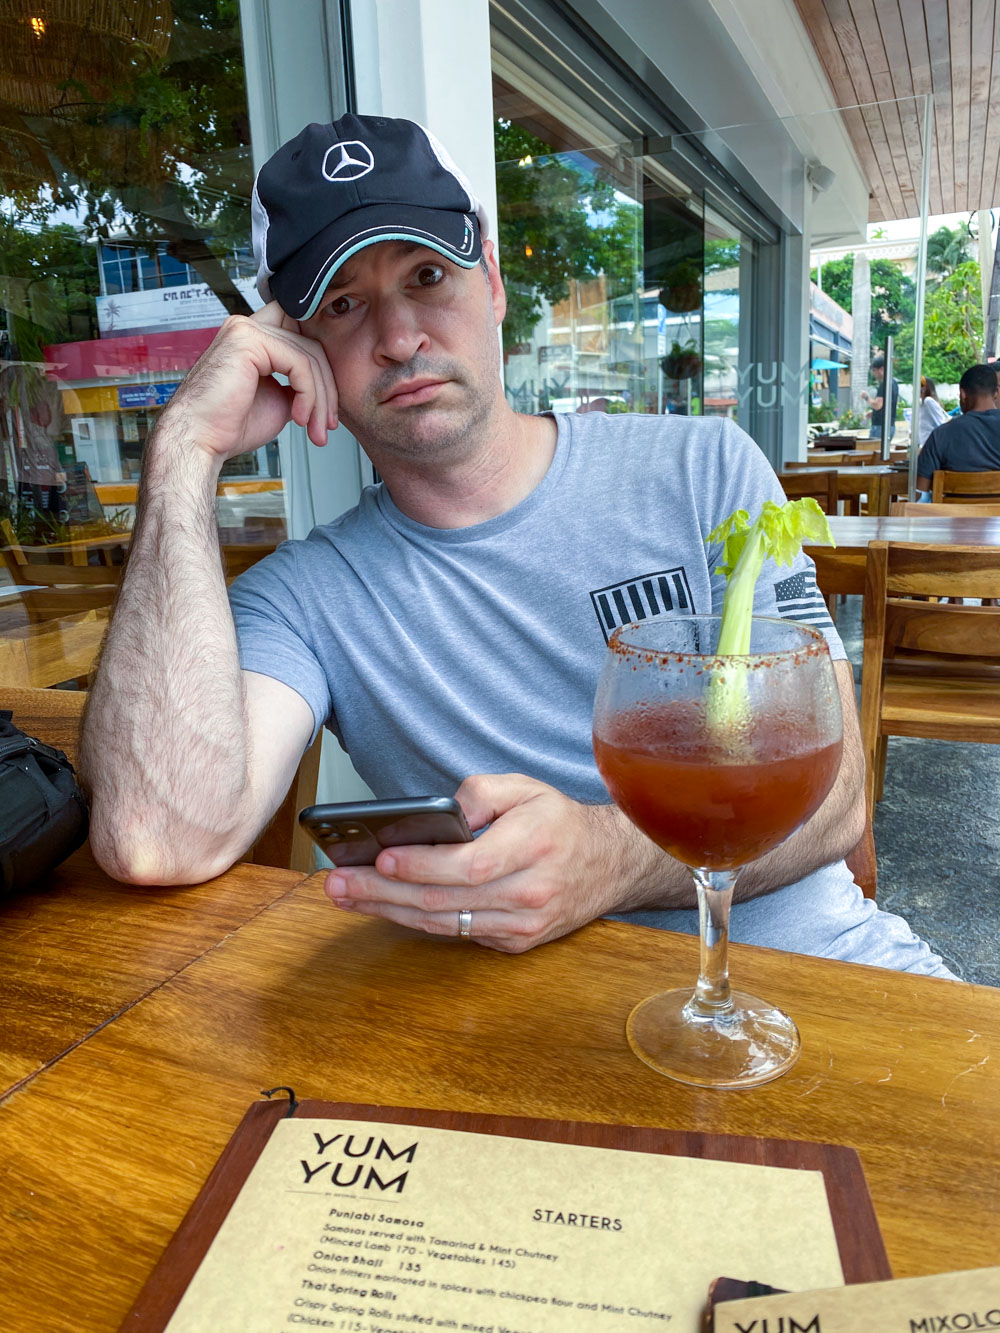 My husband at Yum Yum by George, drinking a Bloody Mary drink